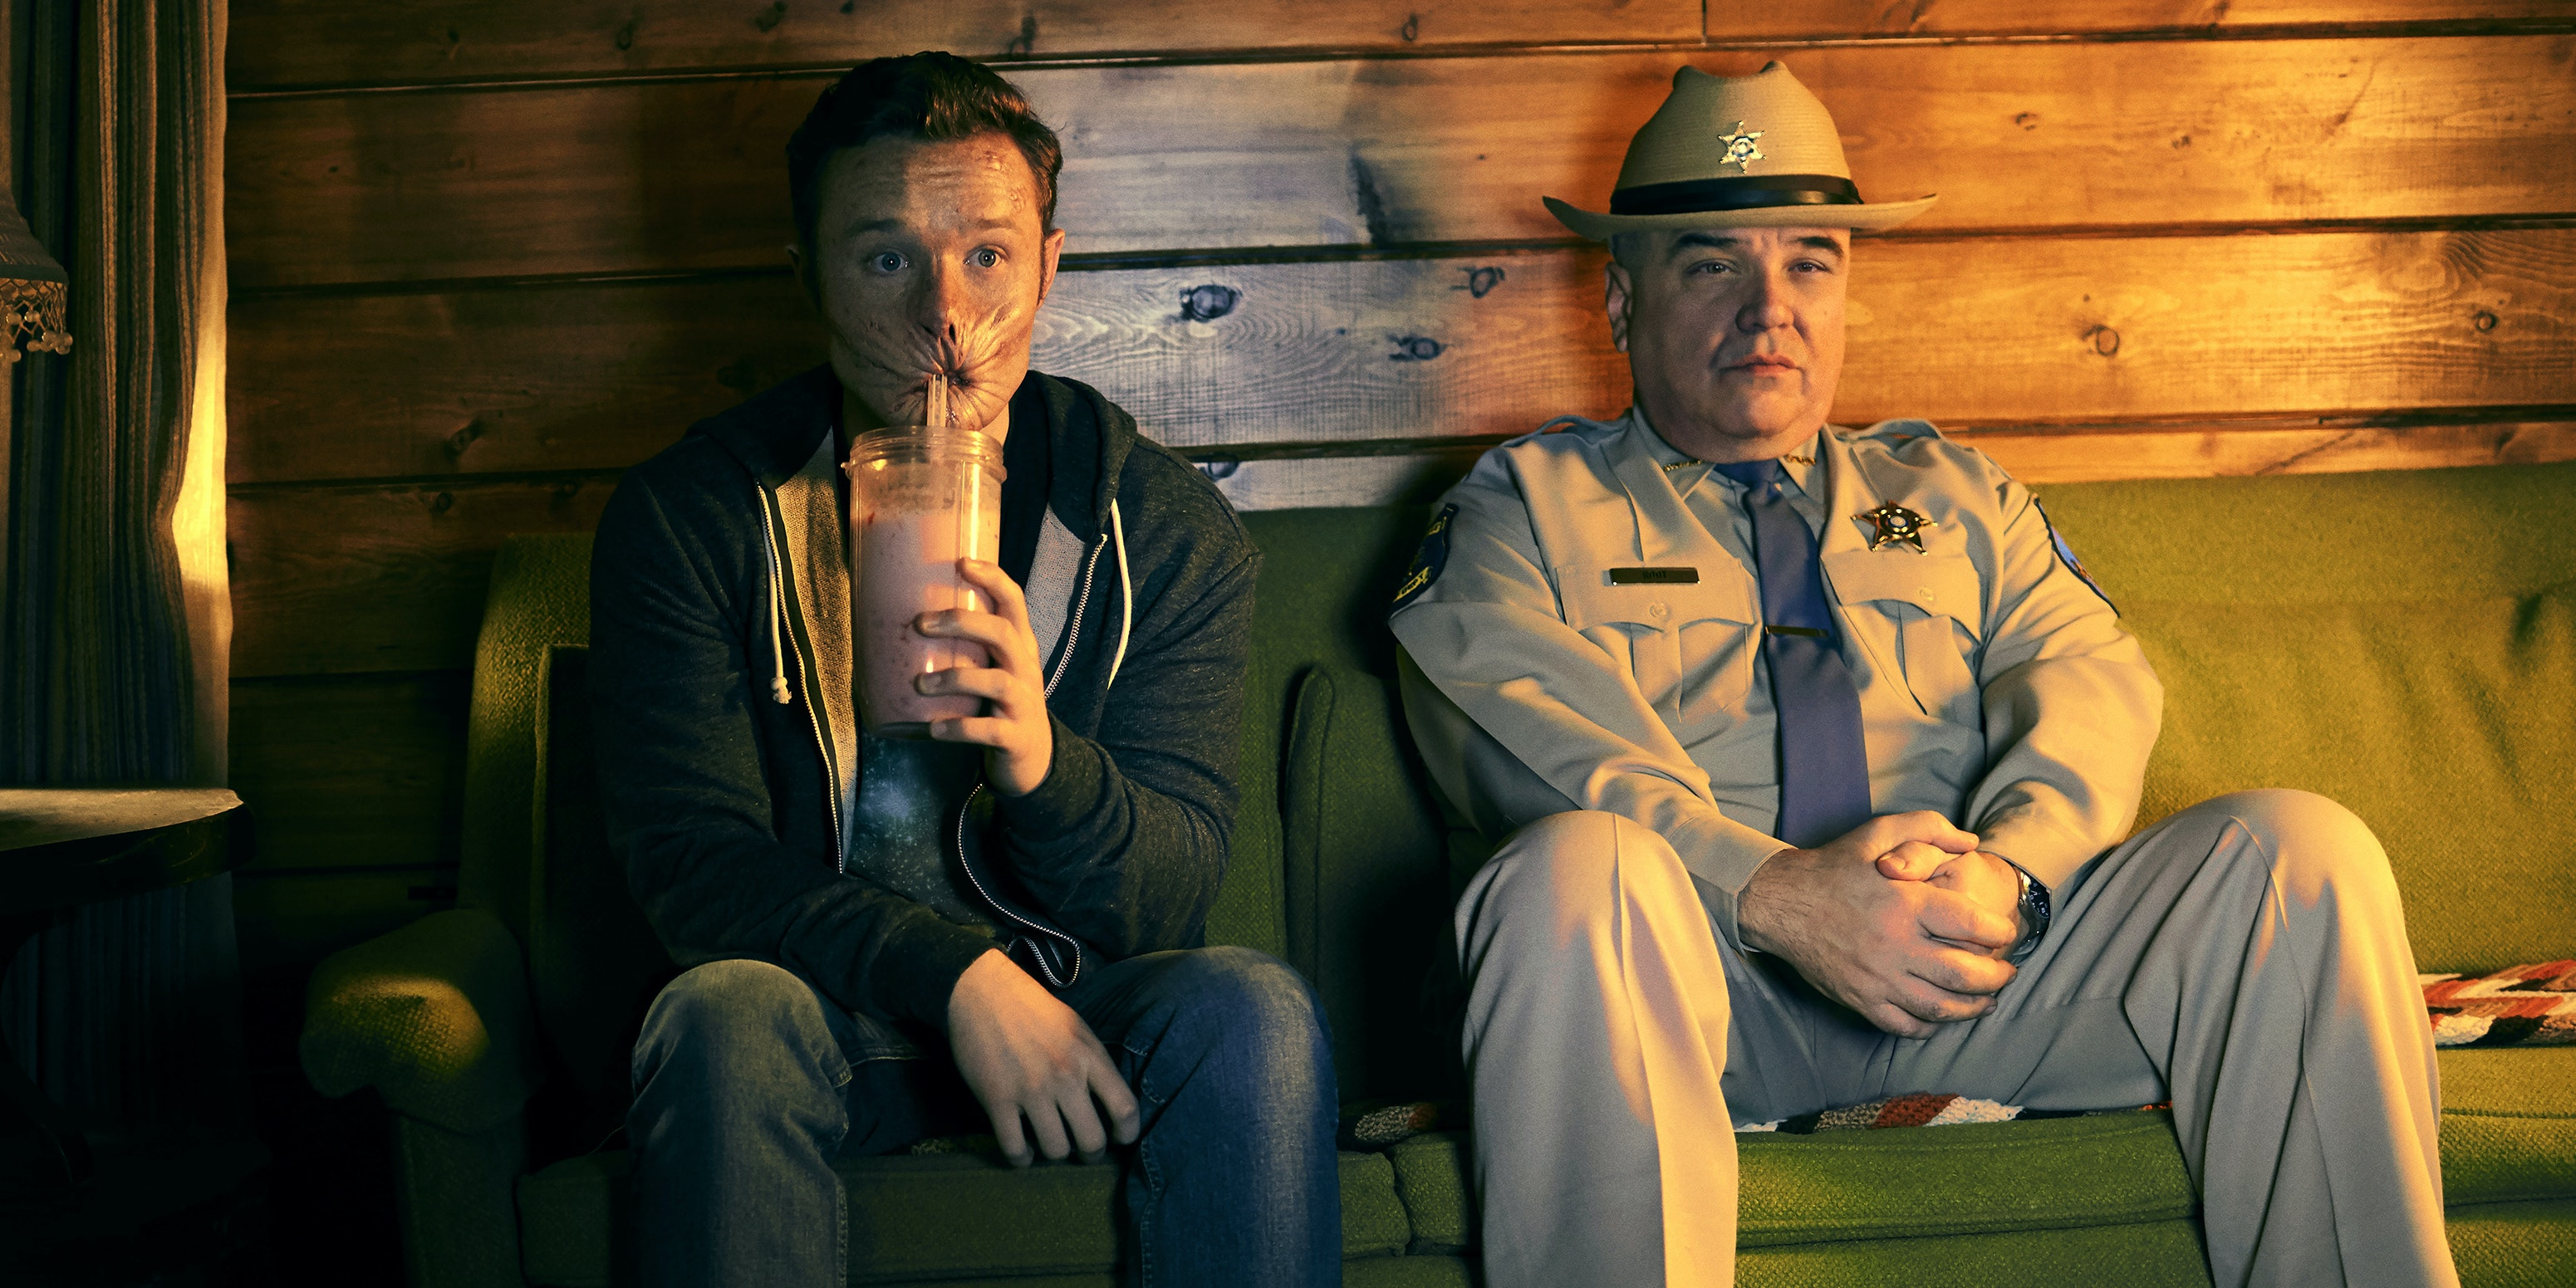 Arseface On AMC's 'Preacher', Explored Deeply And With Care